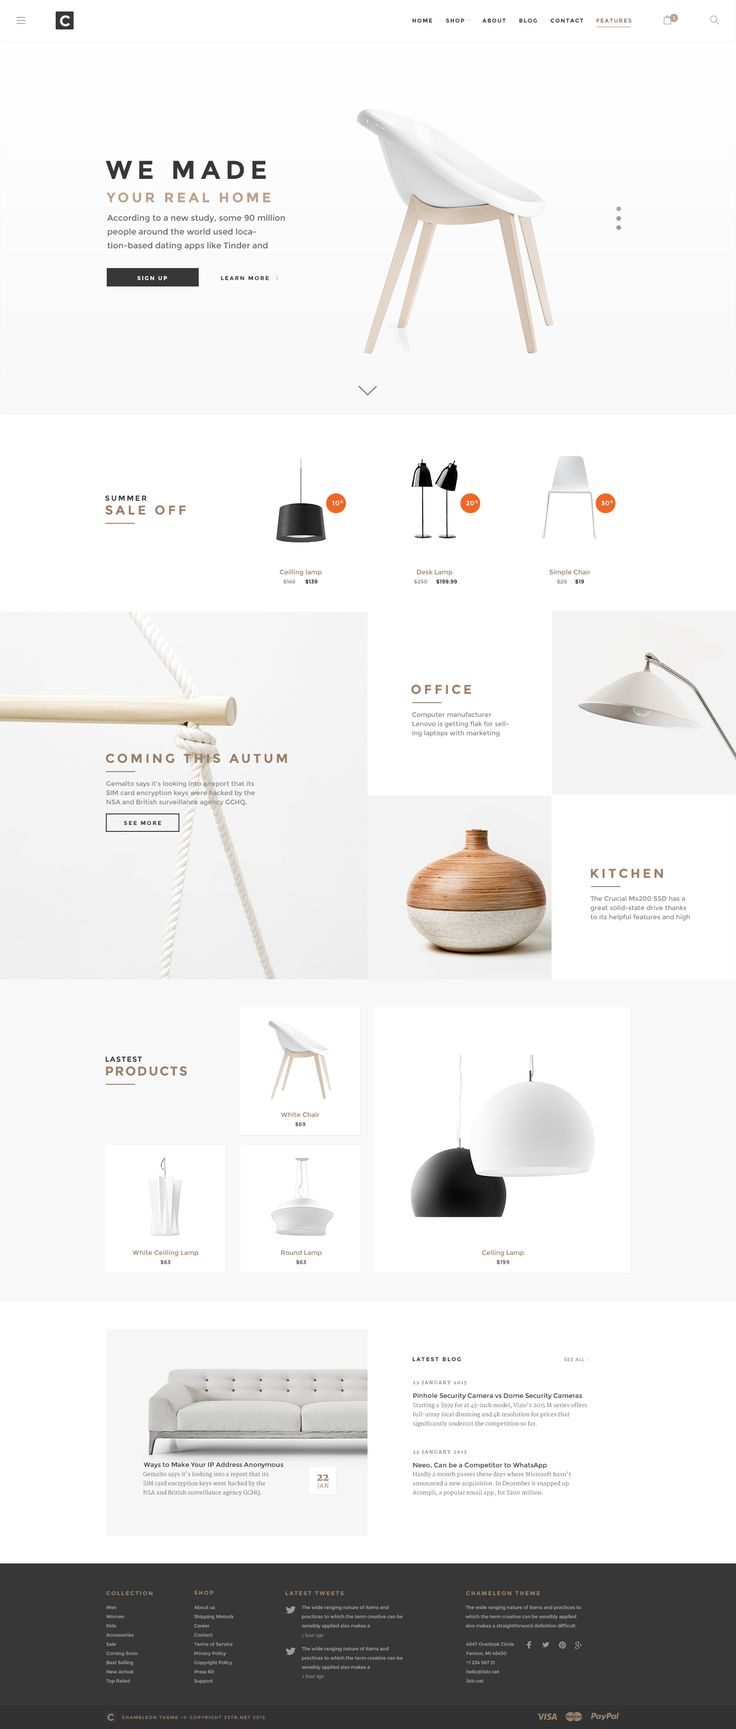 Chameleon Shop Psd Template Is An Unique Ecommerce Psd Template For On Online Shopping Store Home Goods